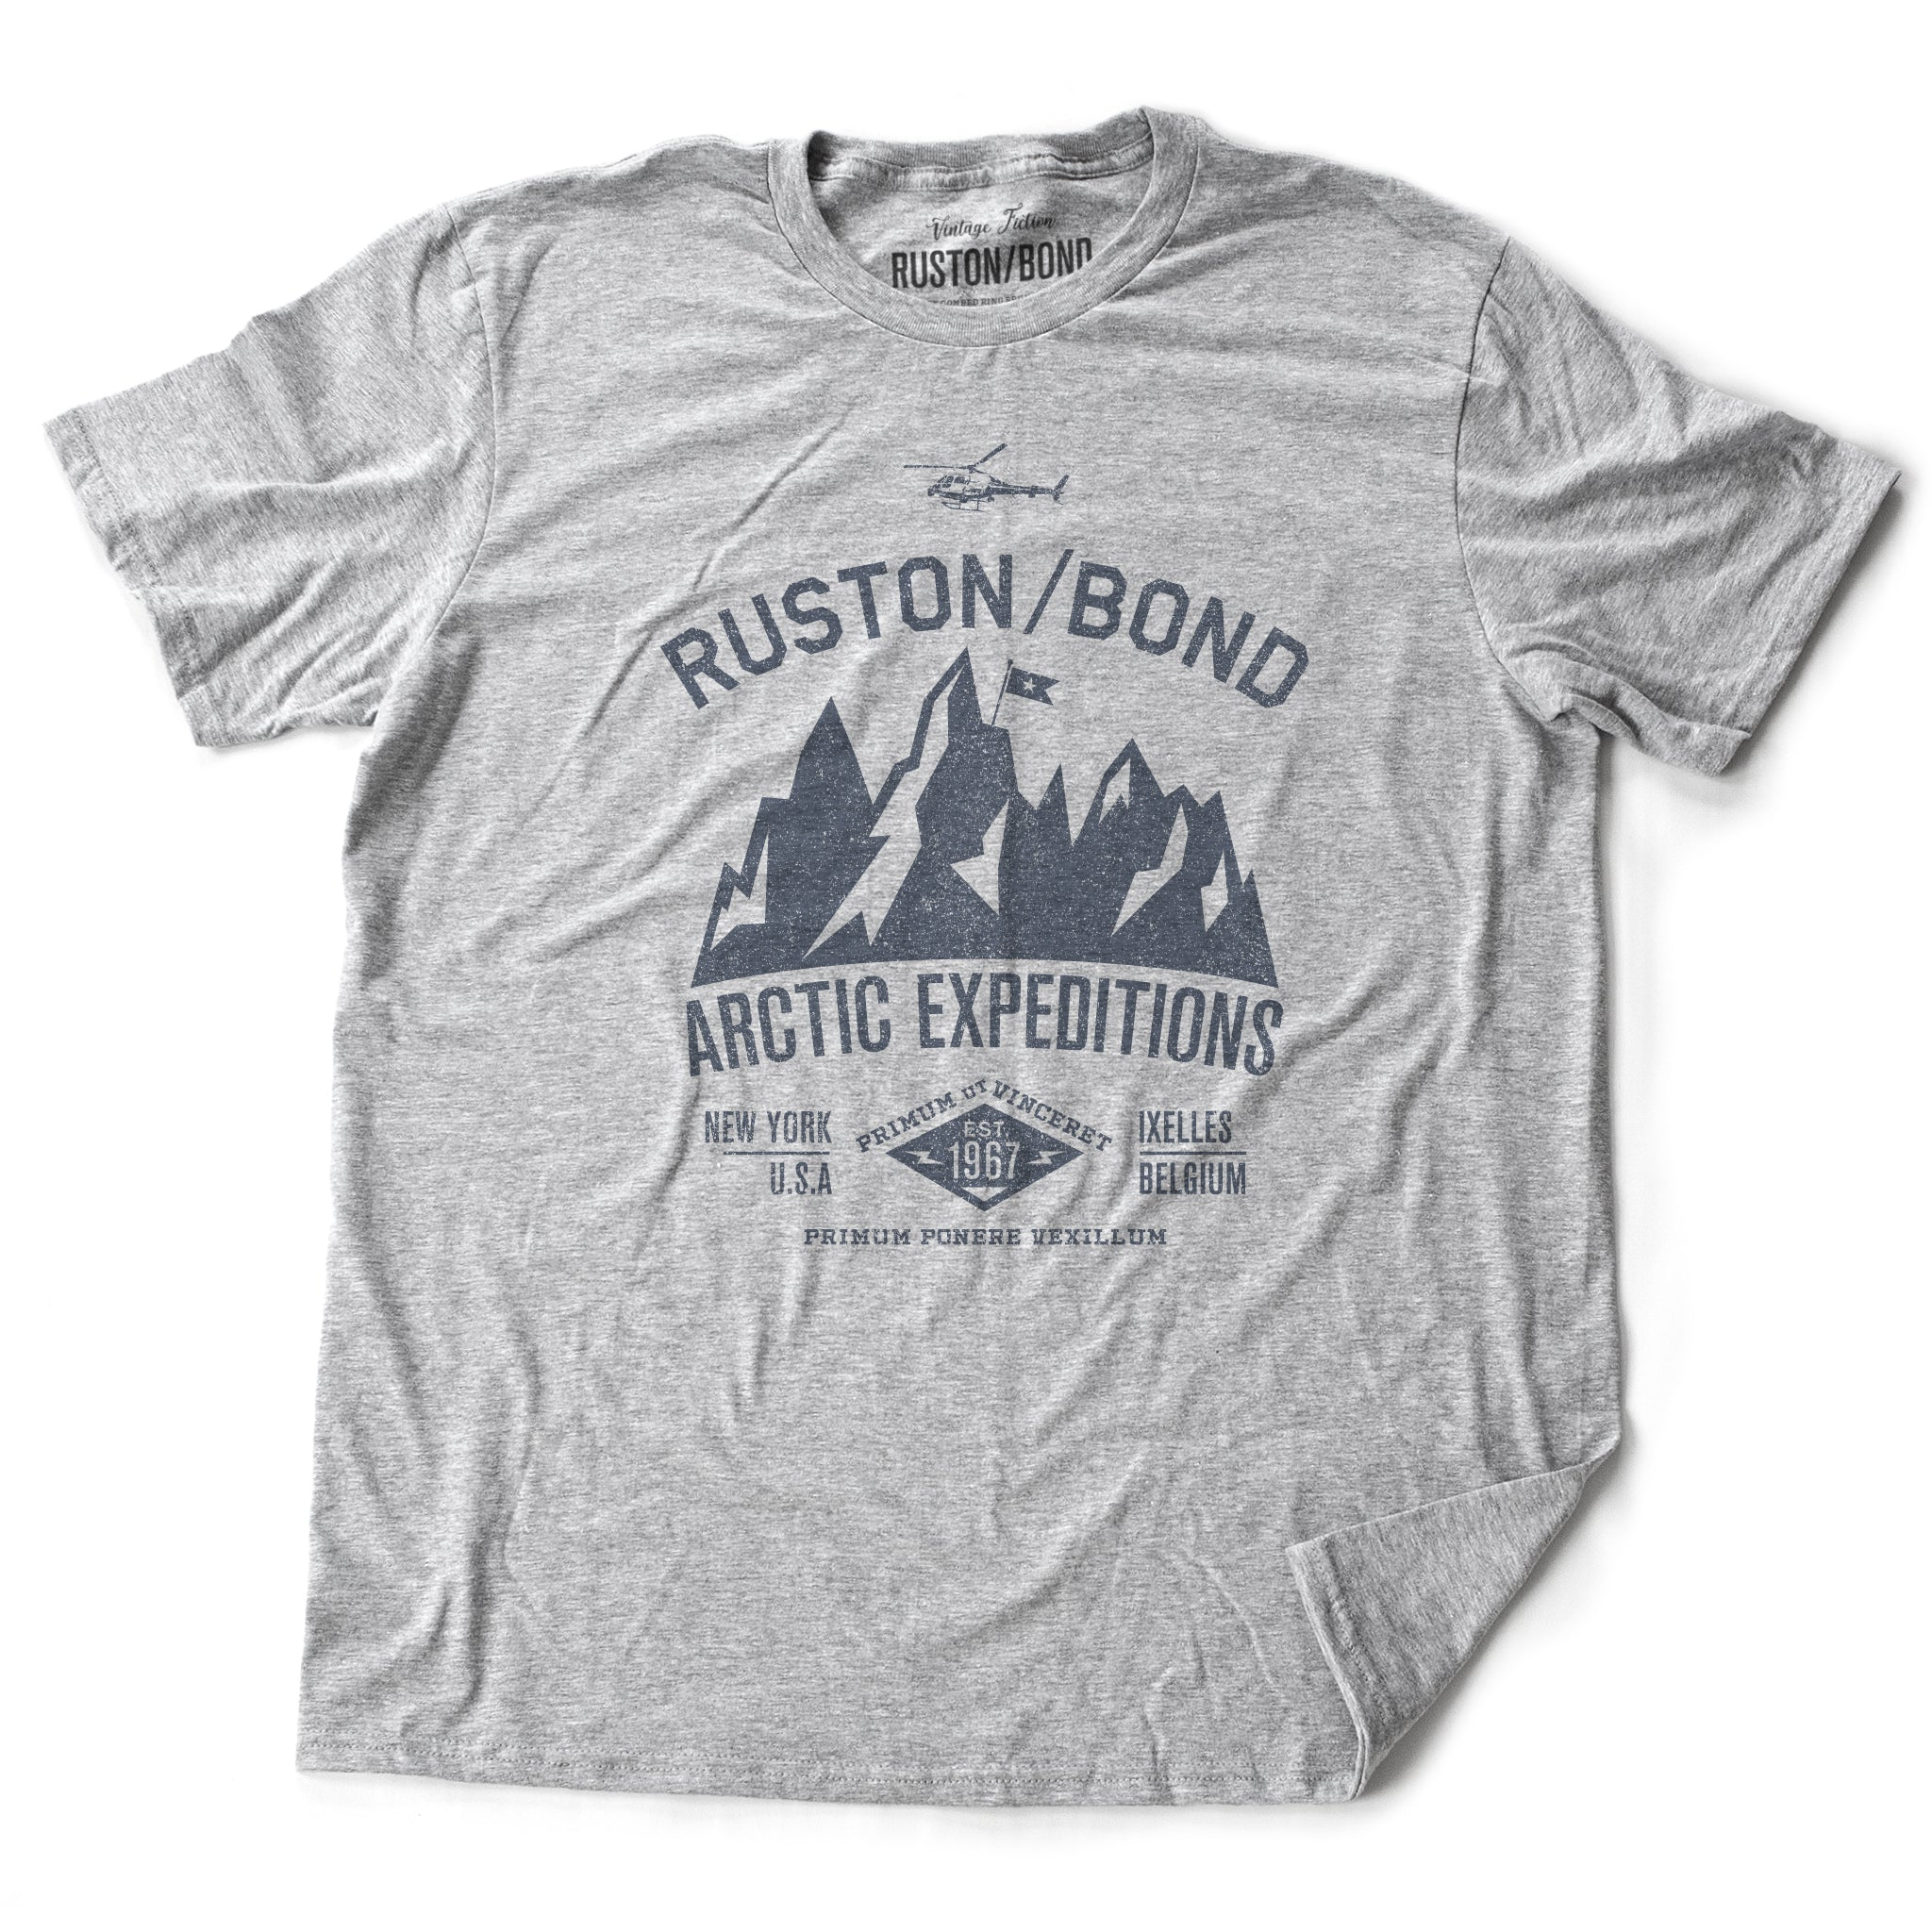 Athletic Gray / Grey  classic, fashion, retro inspired t-shirt, with a fictional advertisement for an adventure company called Ruston/Bond Arctic Expeditions. It shows a mountain range and a helicopter, and lists the company locations in New York City and Ixelles, Belgium, and a Latin quote.  Inspired by the films of Wes Anderson. From wolfsaint.net